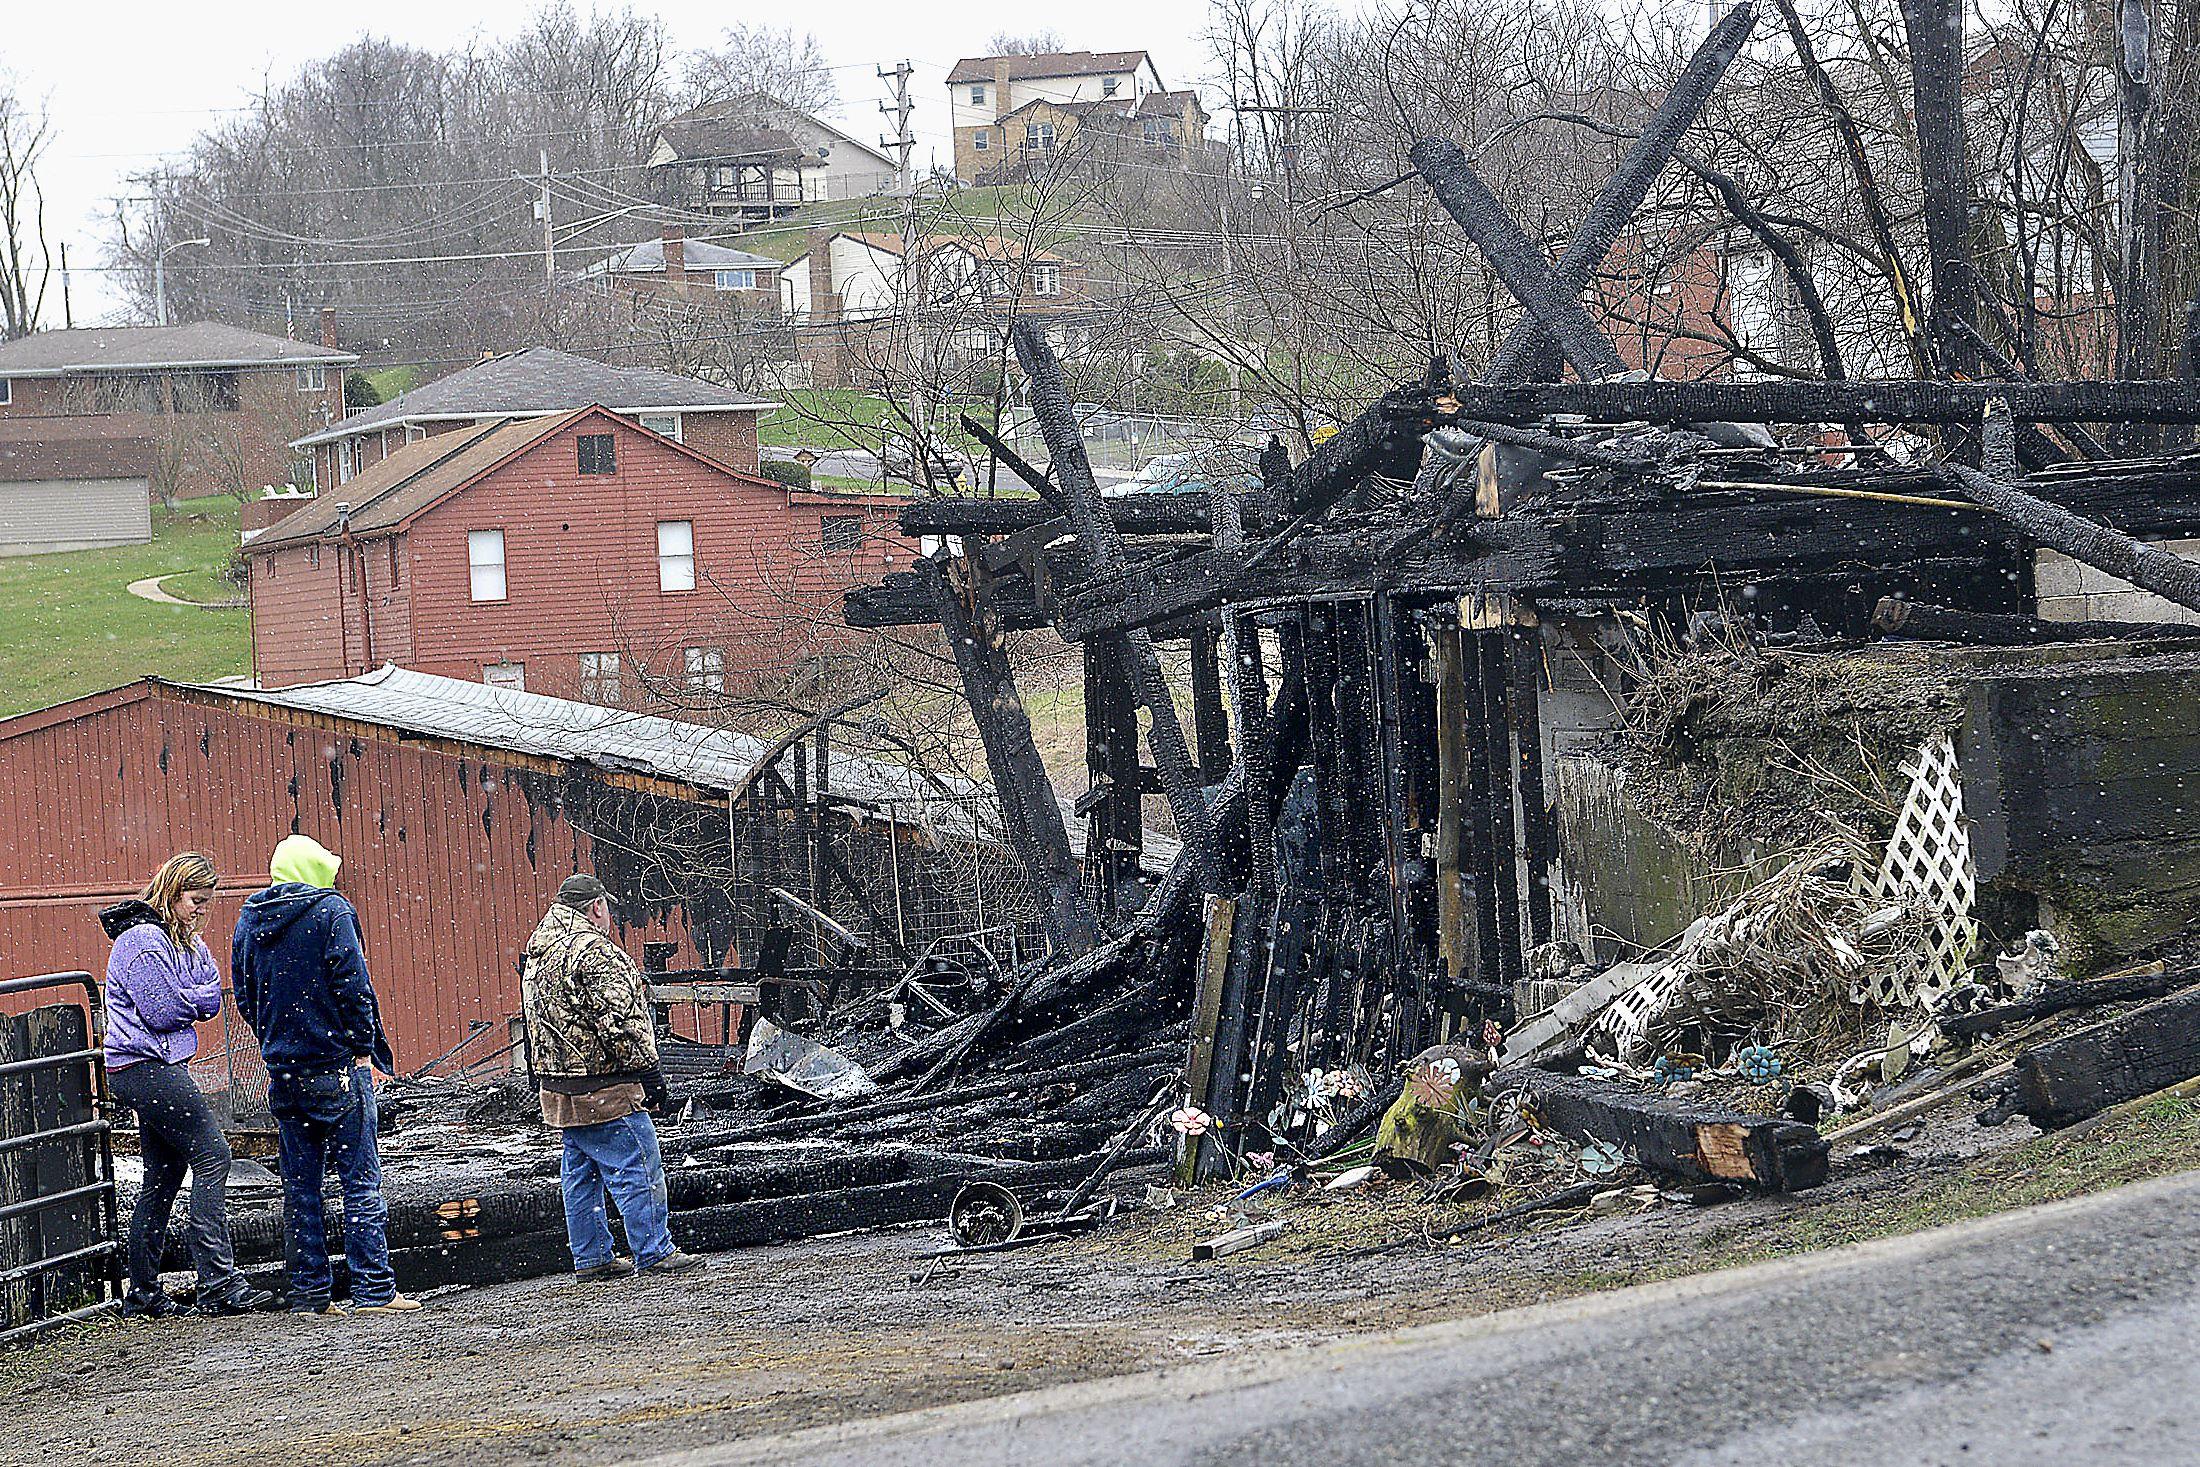 20160320lrhorsebarnfire05-3 Firefighters probe the ashes from a fire at Quest Stables at the intersection of Wallace and Ridge Road in South Park Township, in March 2016. Seven horses, two goats, a pig and an undetermined number of ducks and chickens perished in the barn fire.